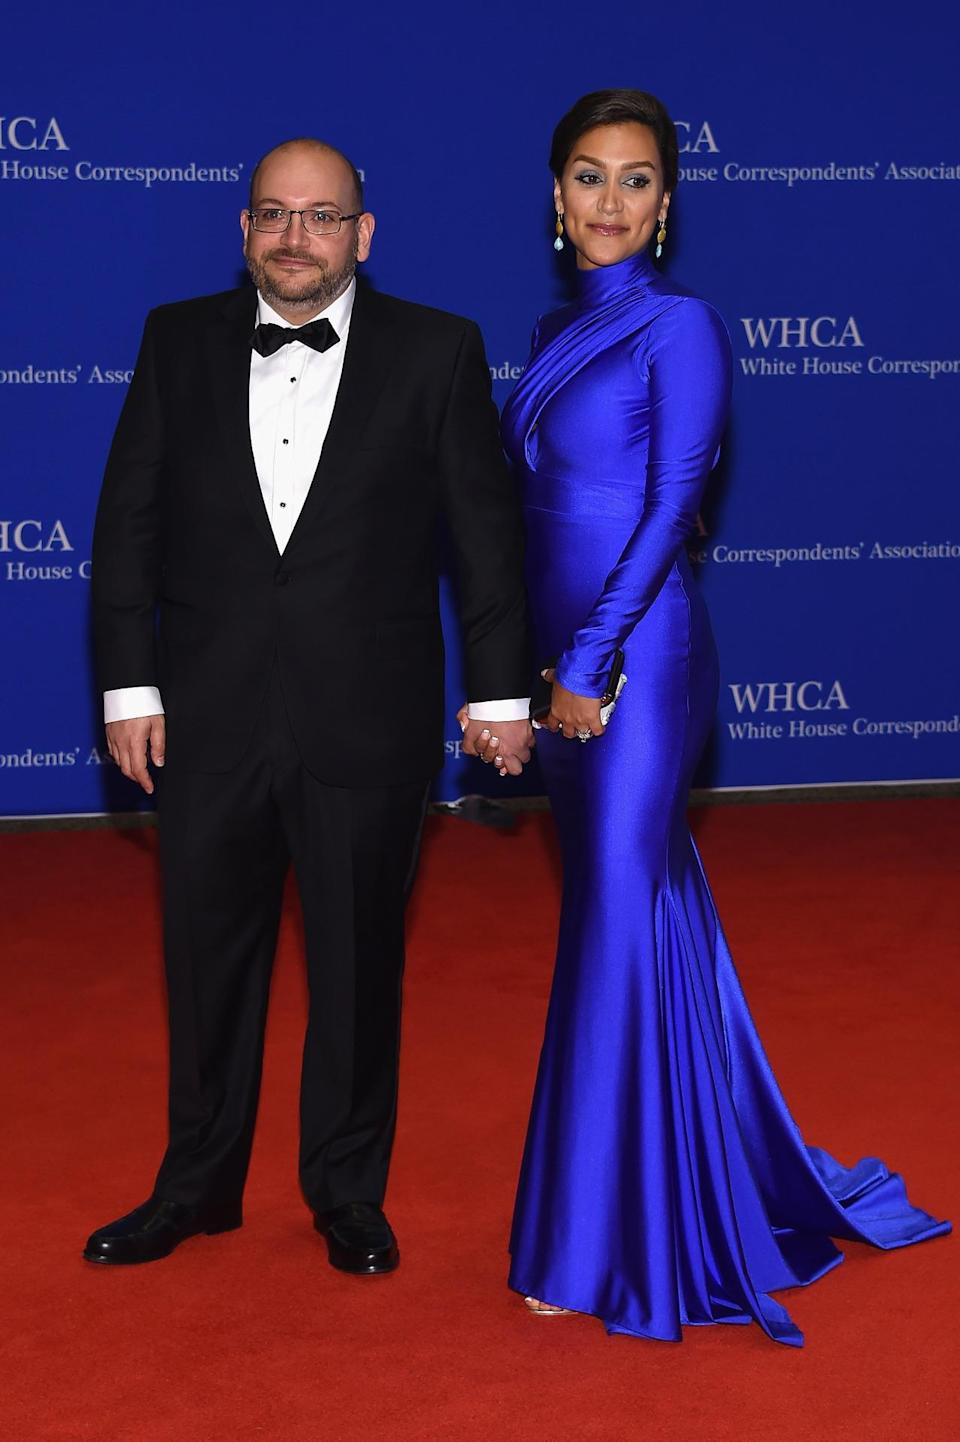 <p>Journalist Jason Rezaian and Yeganeh Salehi attend the 102nd White House Correspondents' Dinner, April 30. <i>(Photo: Larry Busacca/Getty Images)</i></p>